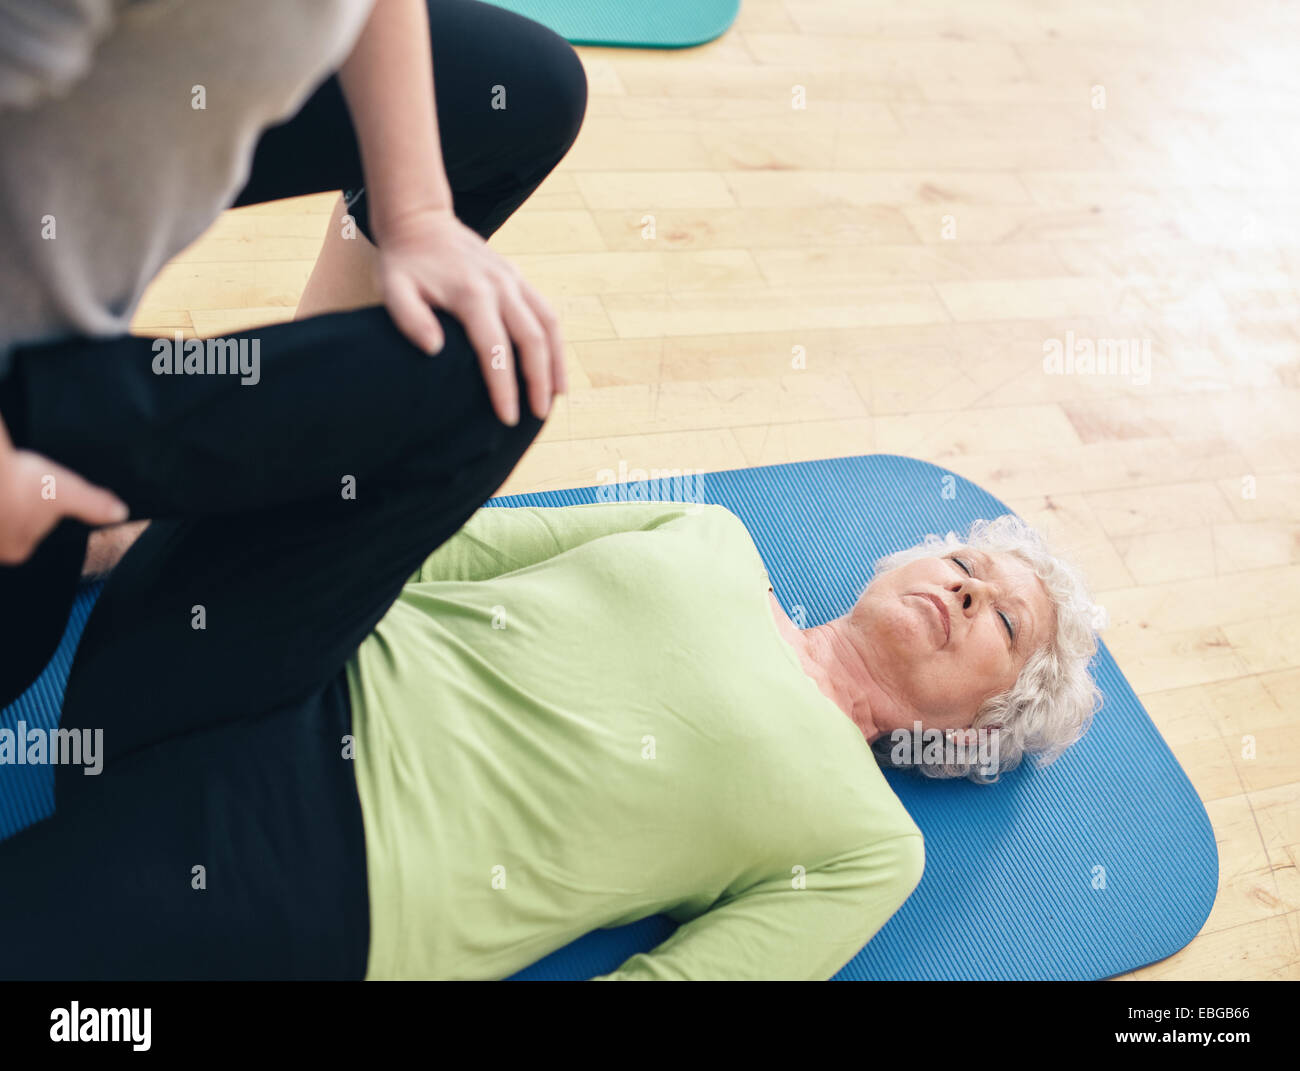 Senior woman lying on exercise mat with her personal trainer helping her doing leg stretches at gym. Elder woman - Stock Image